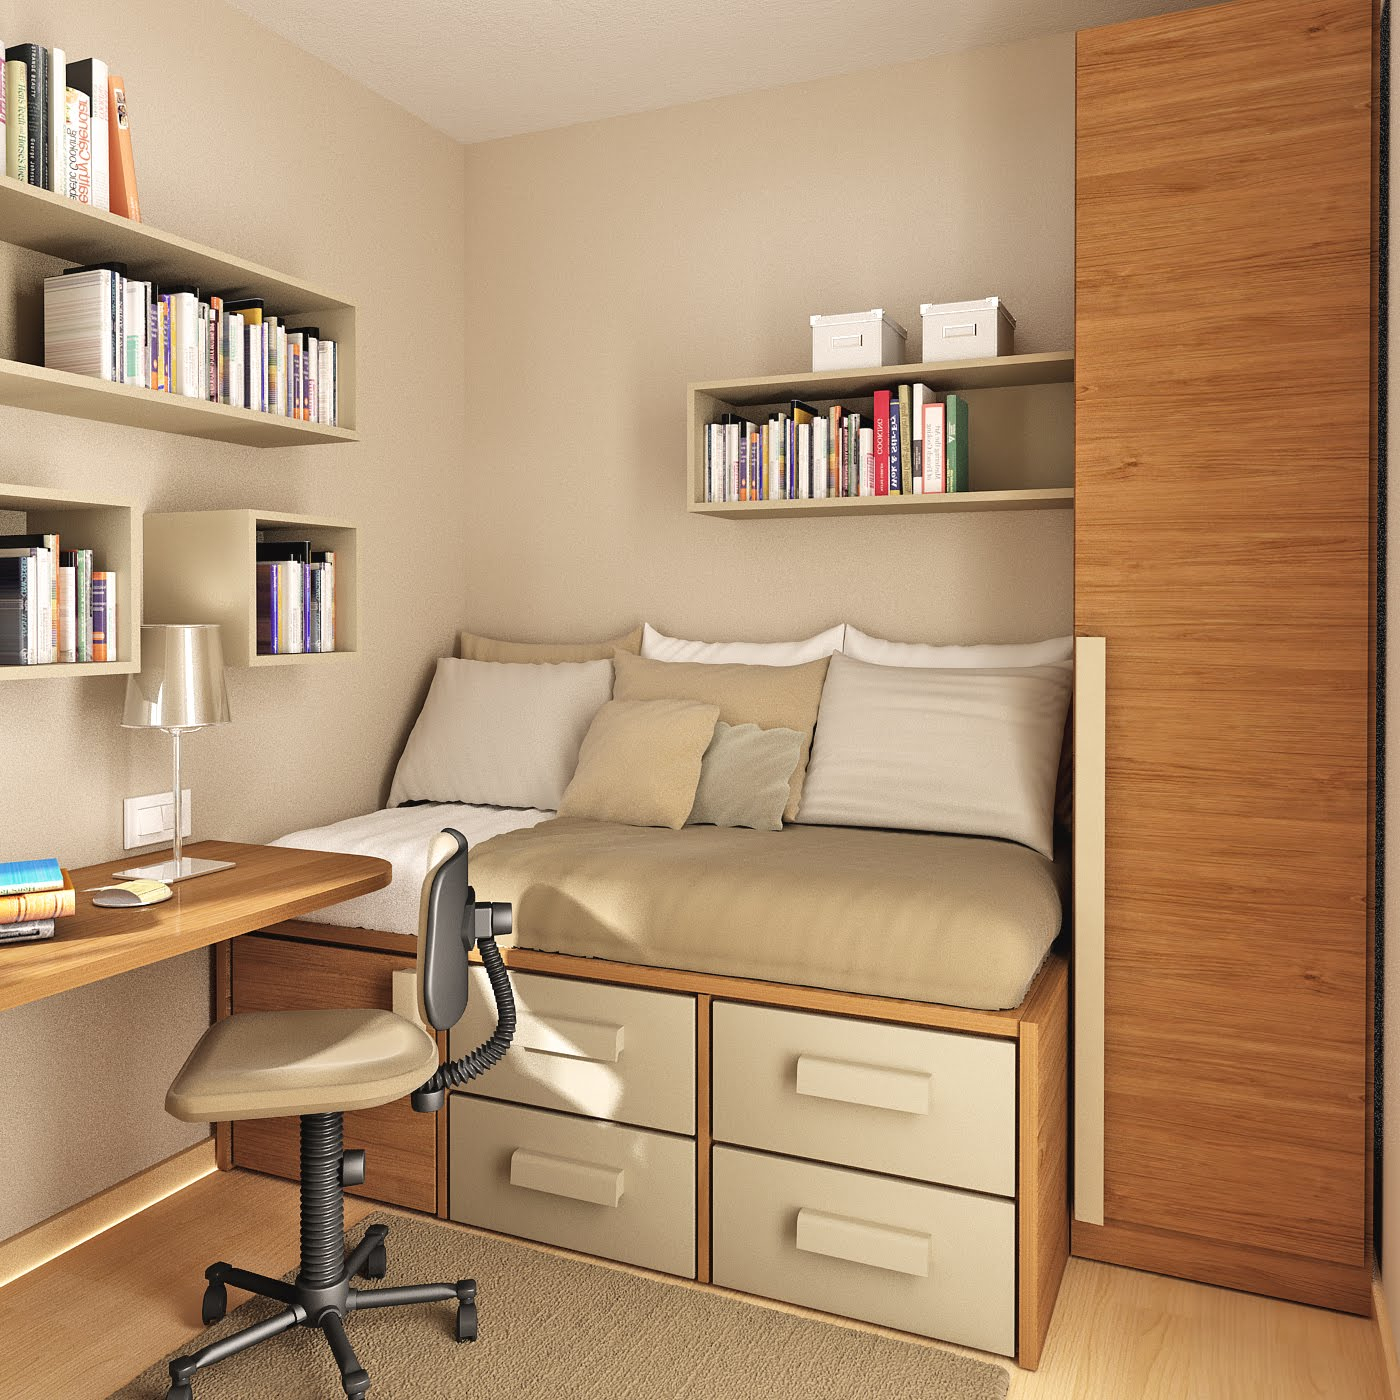 Study Room Design Pictures | Dreams House Furniture